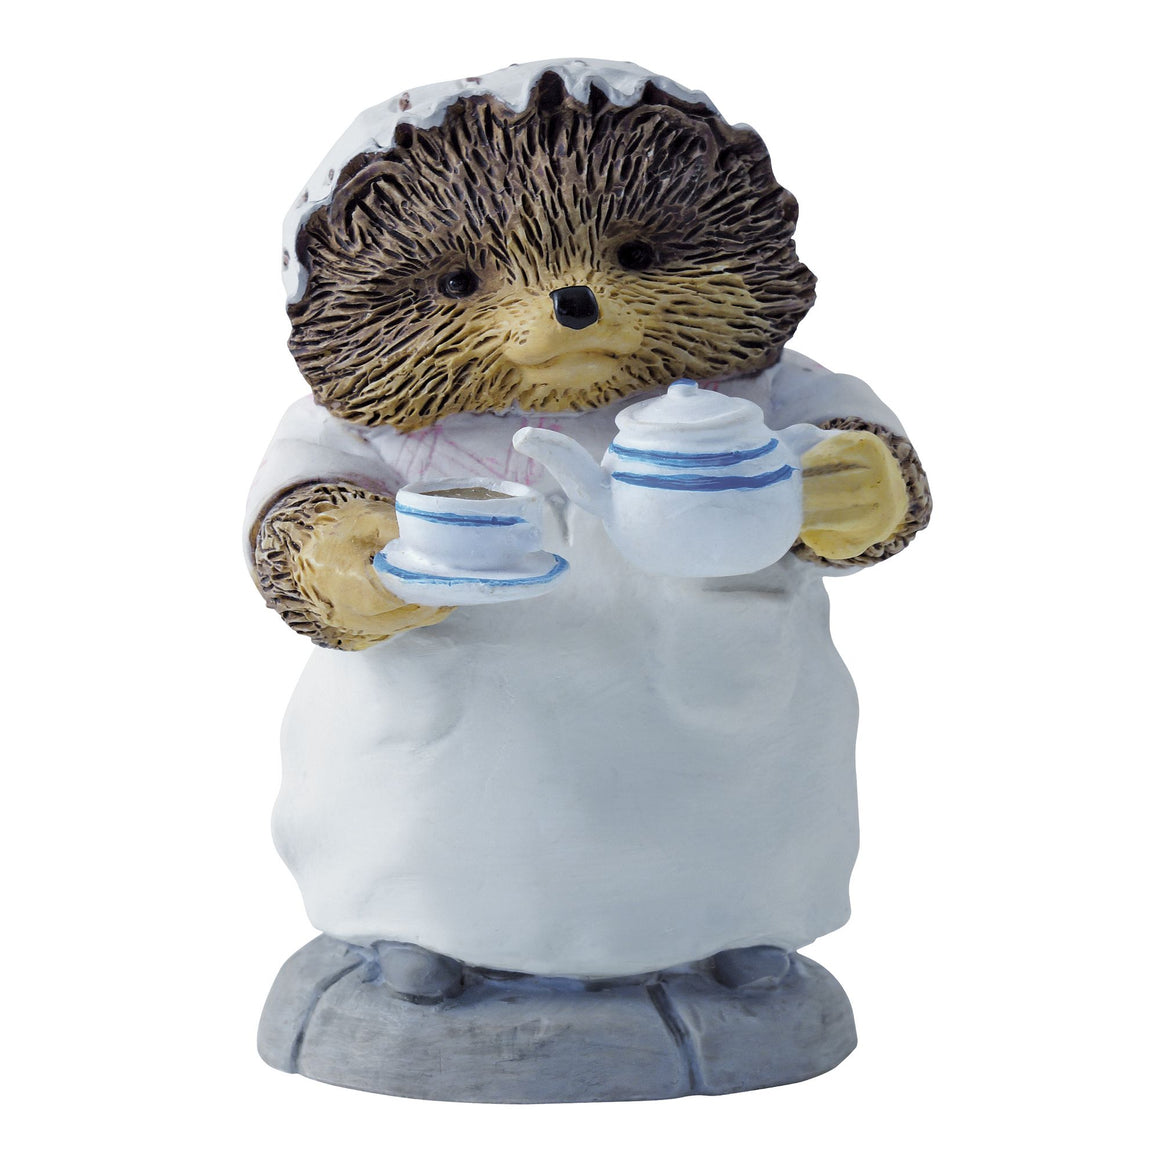 Mrs. Tiggy-Winkle Pouring Tea Figurine by Beatrix Potter